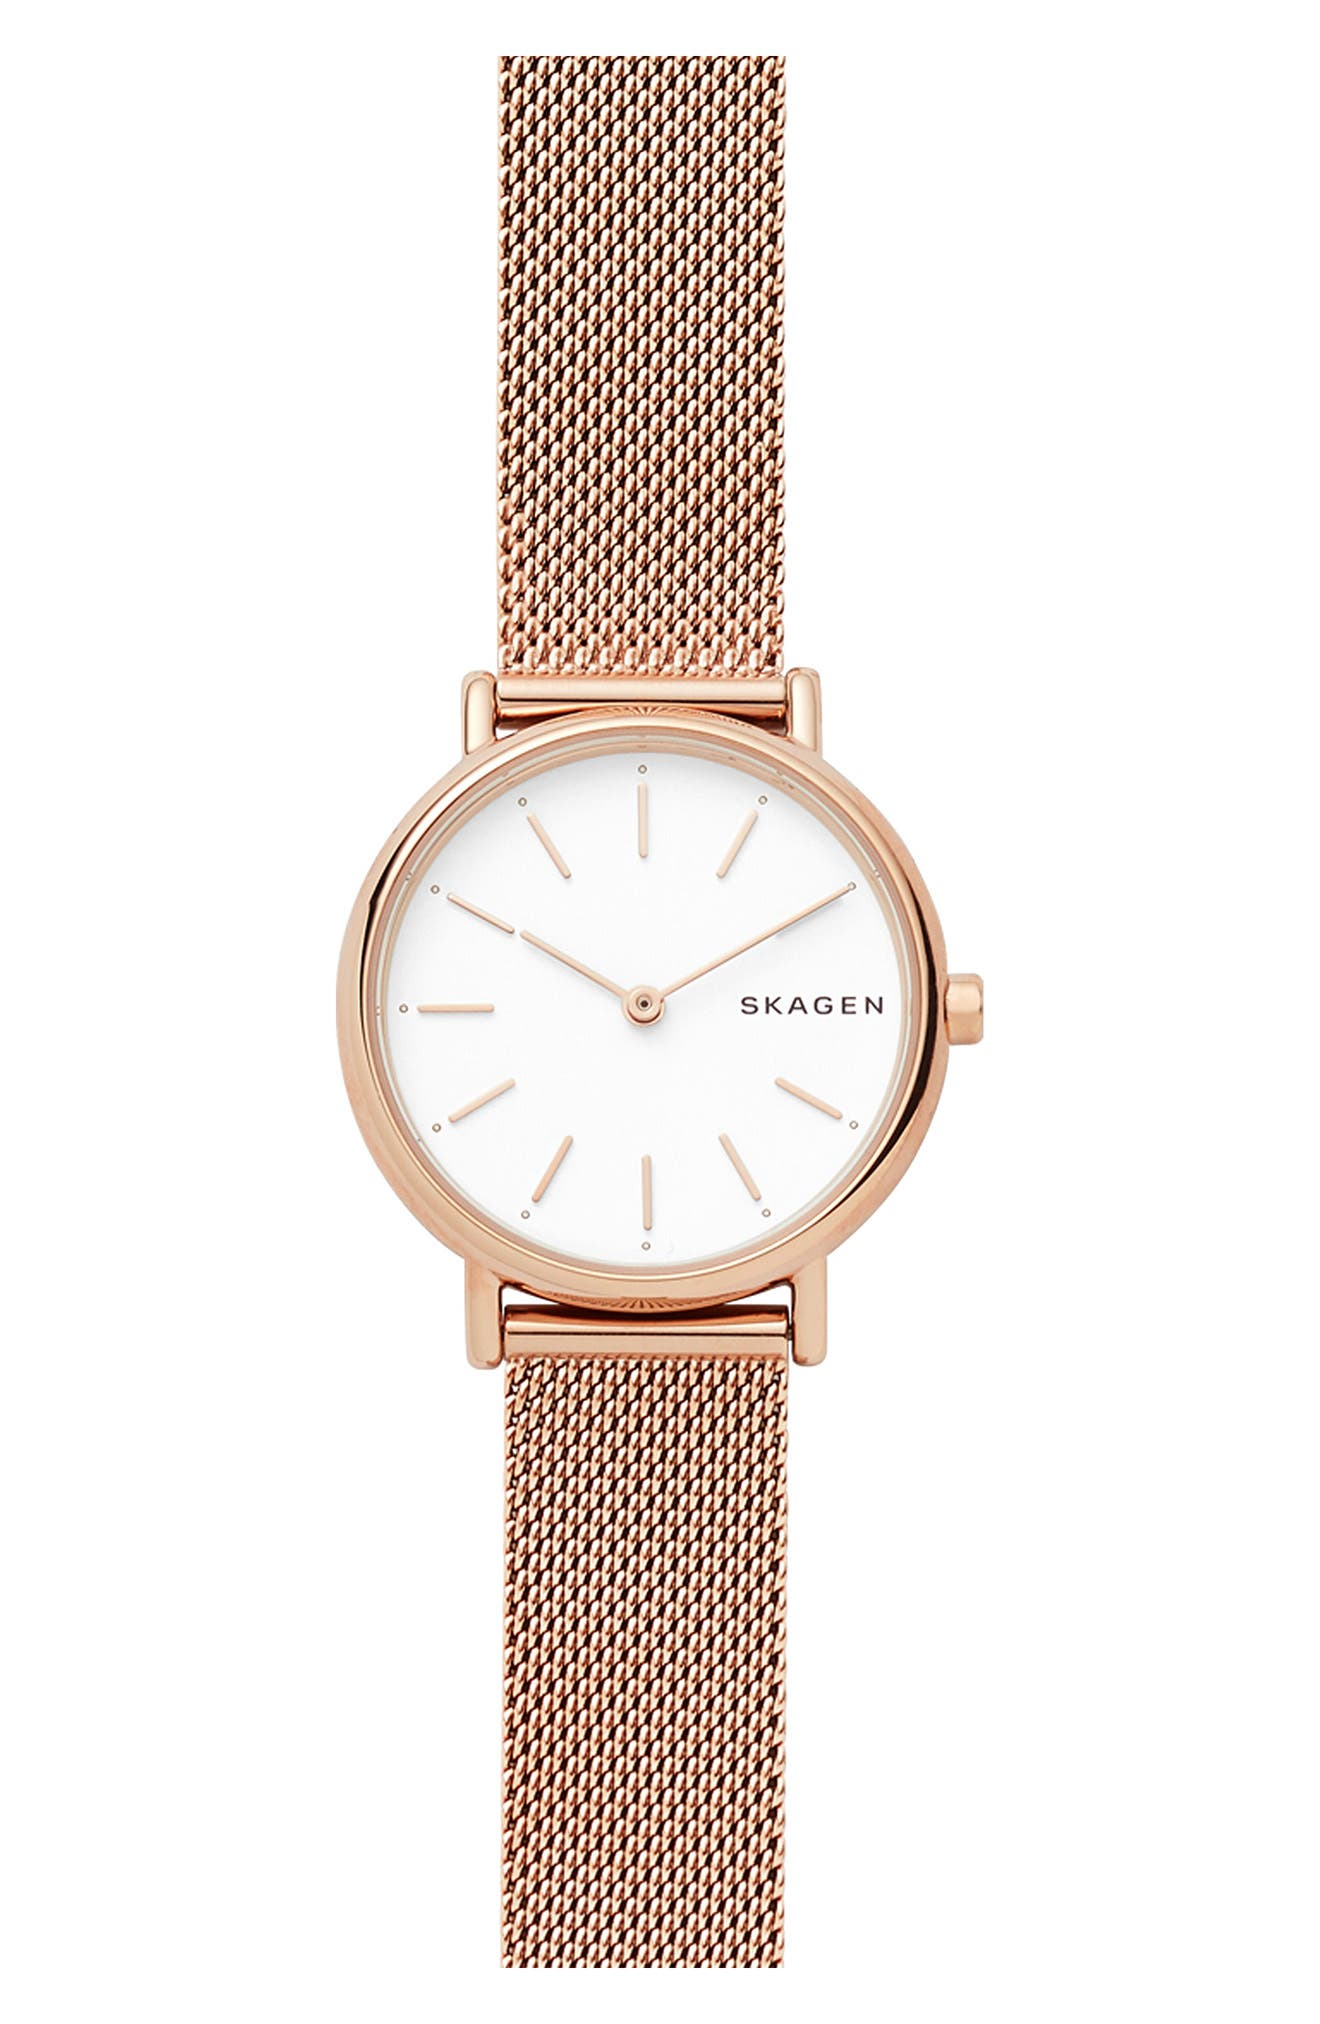 Signatur Slim Mesh Strap Watch, 30mm,                         Main,                         color, ROSE GOLD/ WHITE/ ROSE GOLD